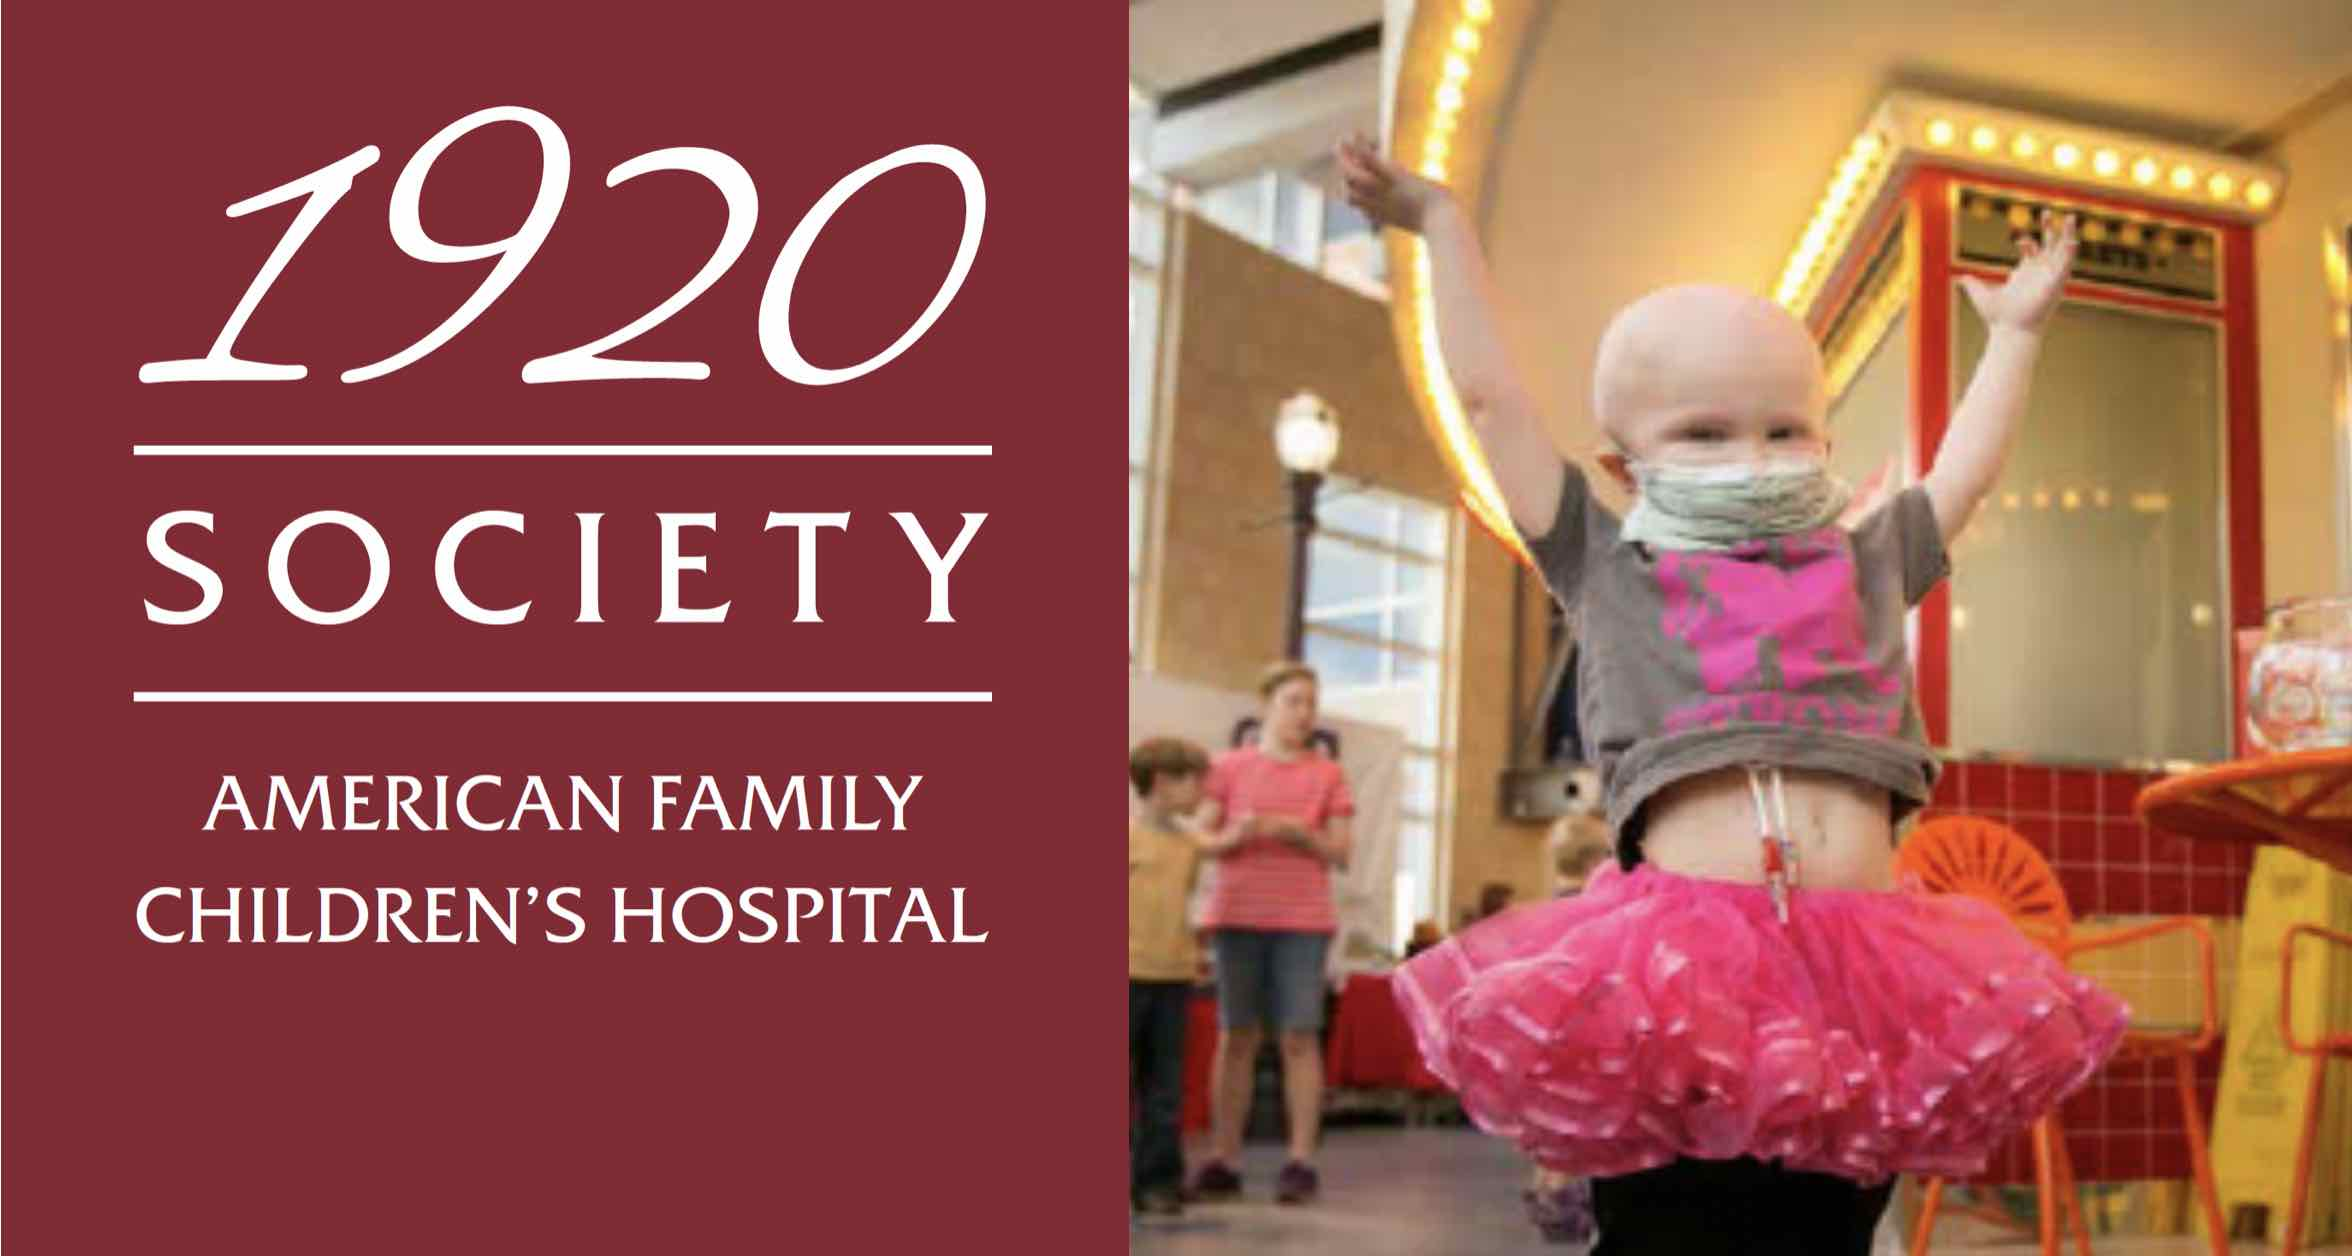 Introducing a special way to create your family's legacy. - Maximize the impact of your giving.